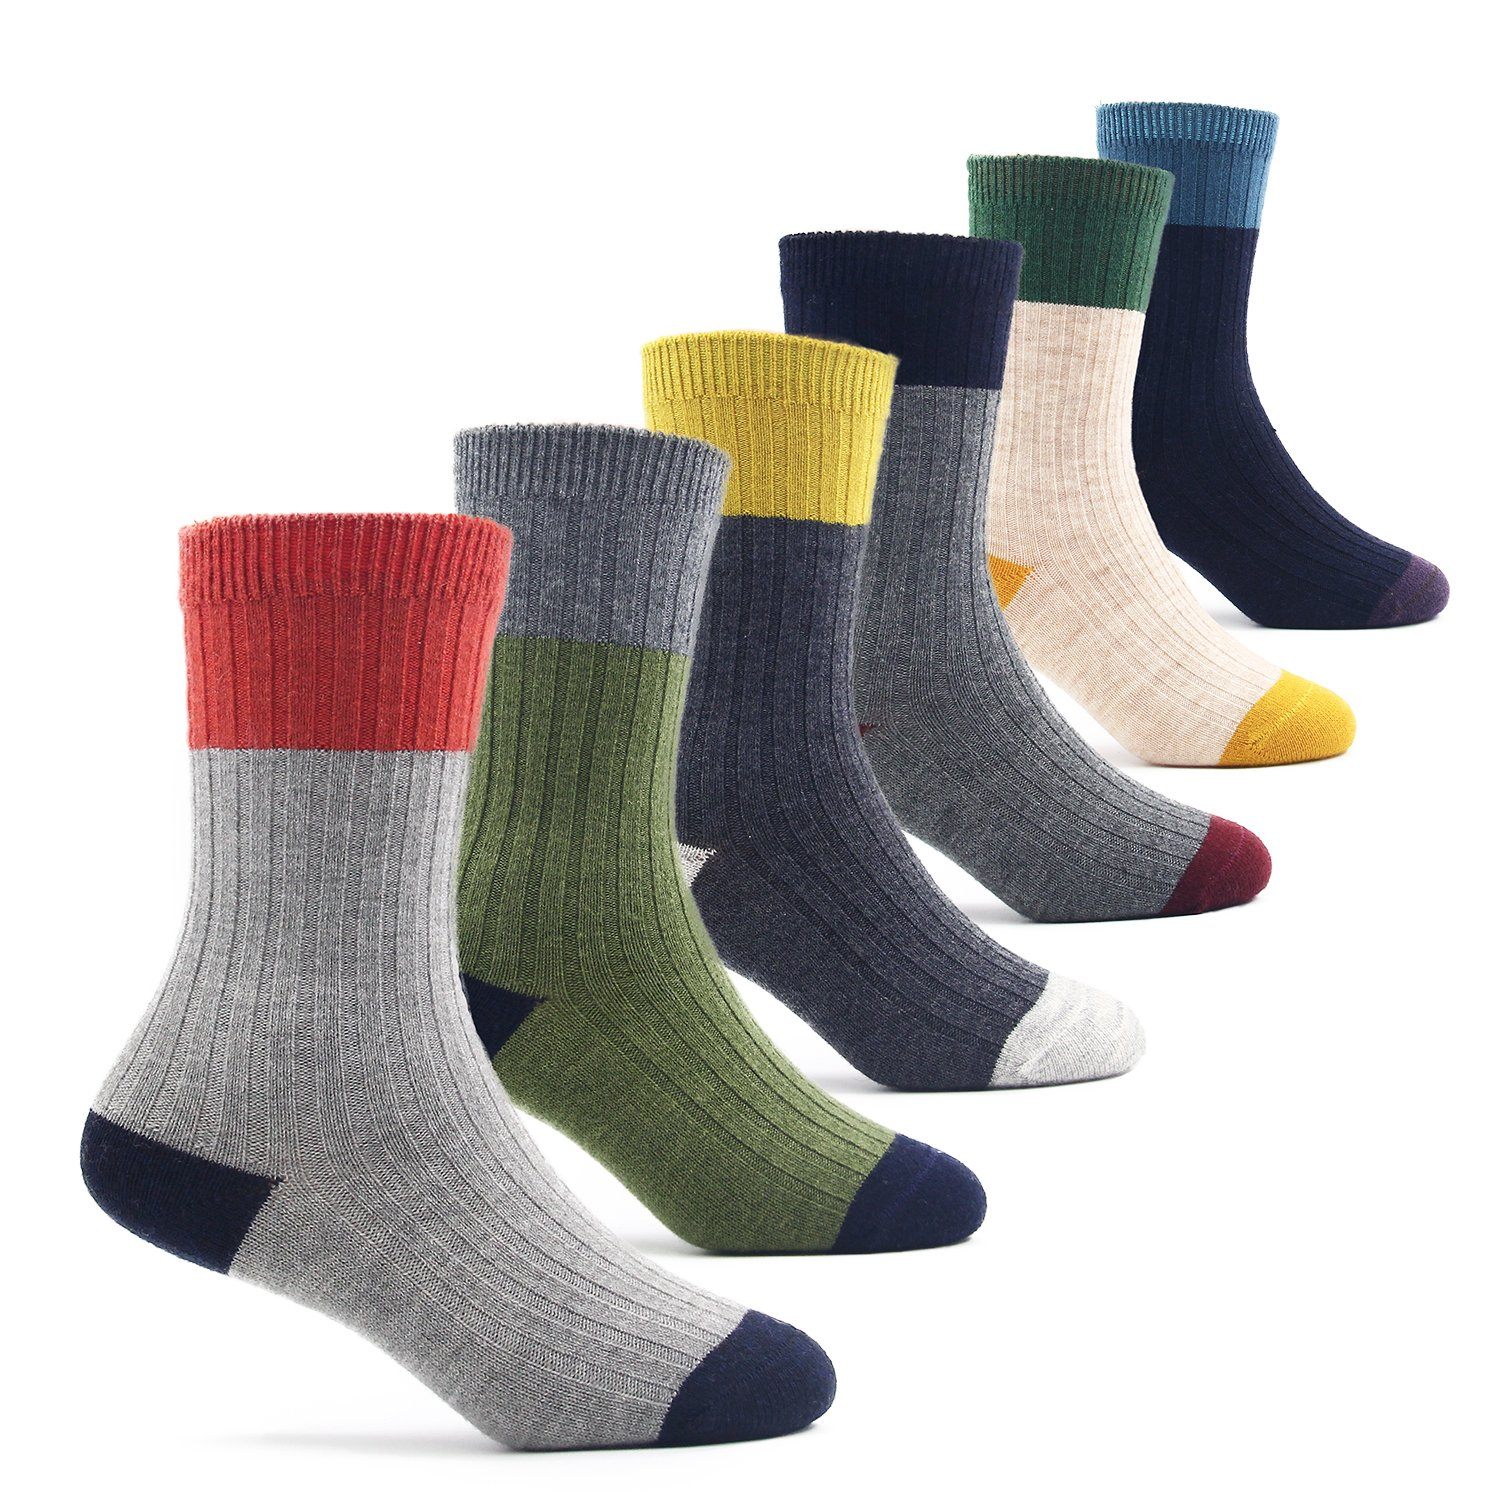 Boys Thick Wool Socks Kids Crew Seamless Winter Warm Socks 6 Pack 6-8 Years